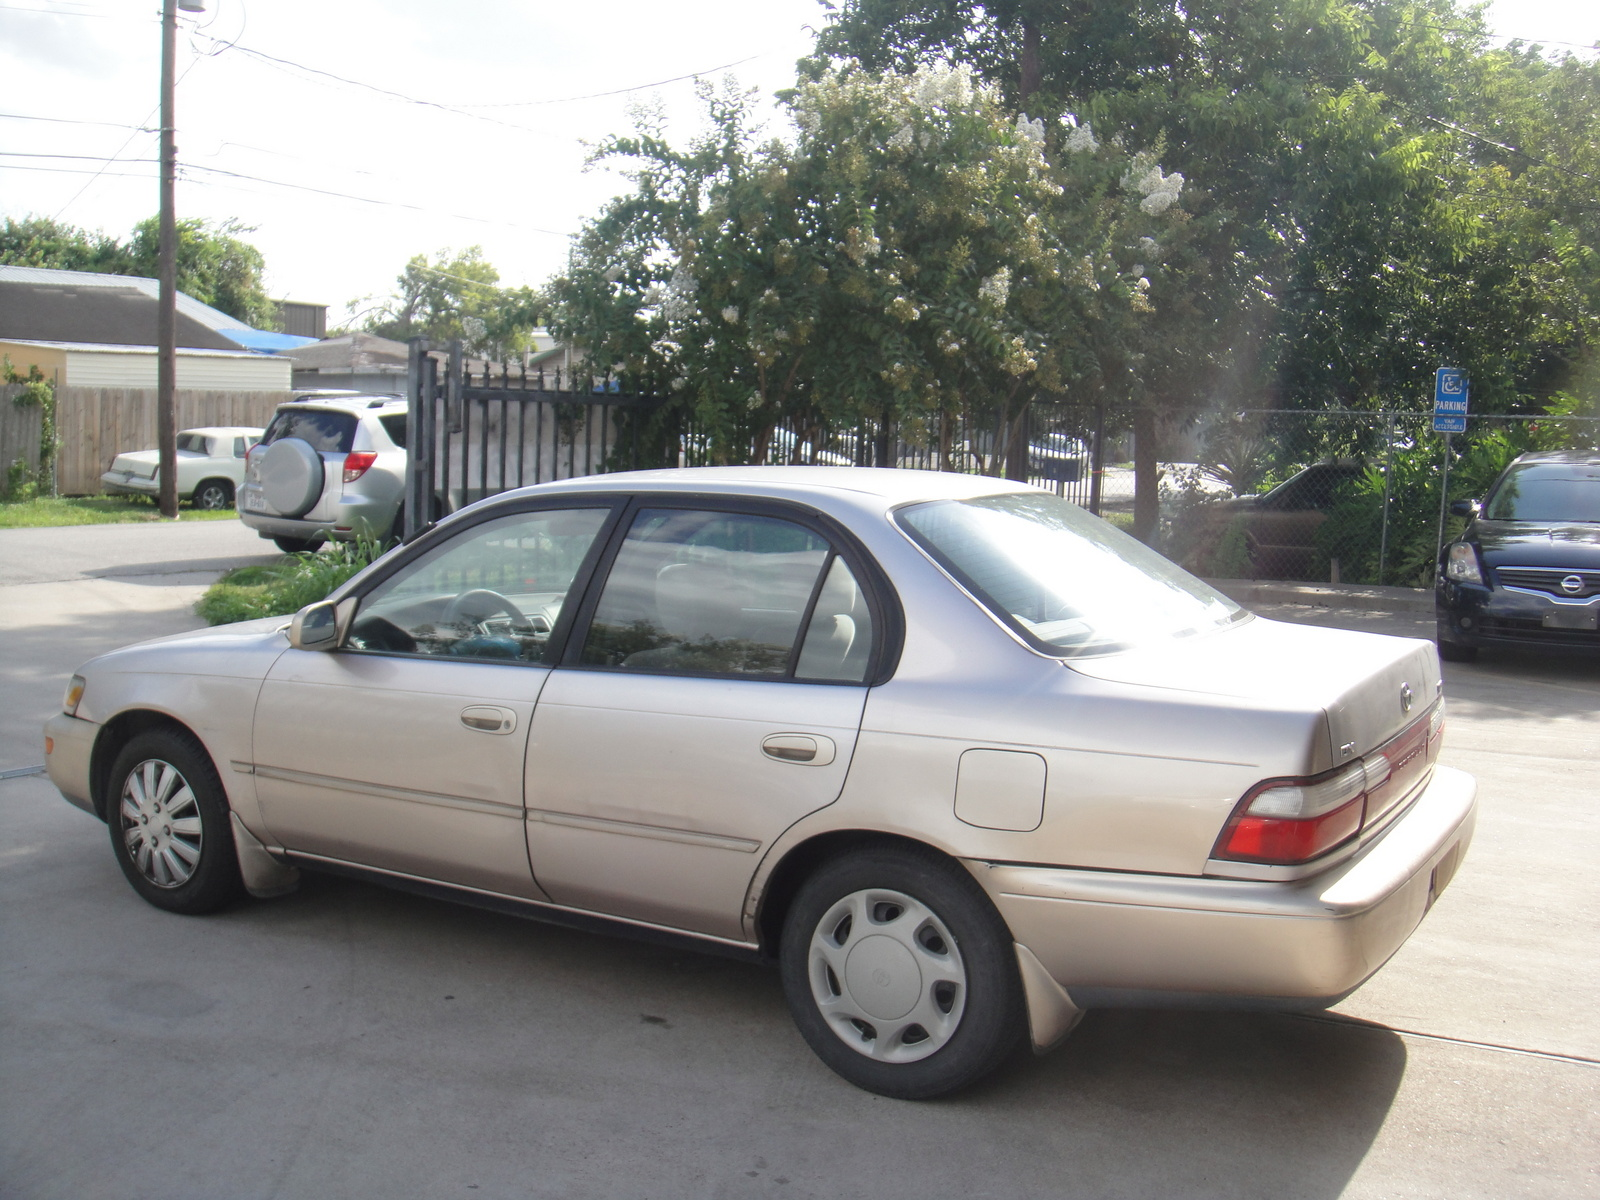 Toyota Corolla 1.5 1996 photo - 8